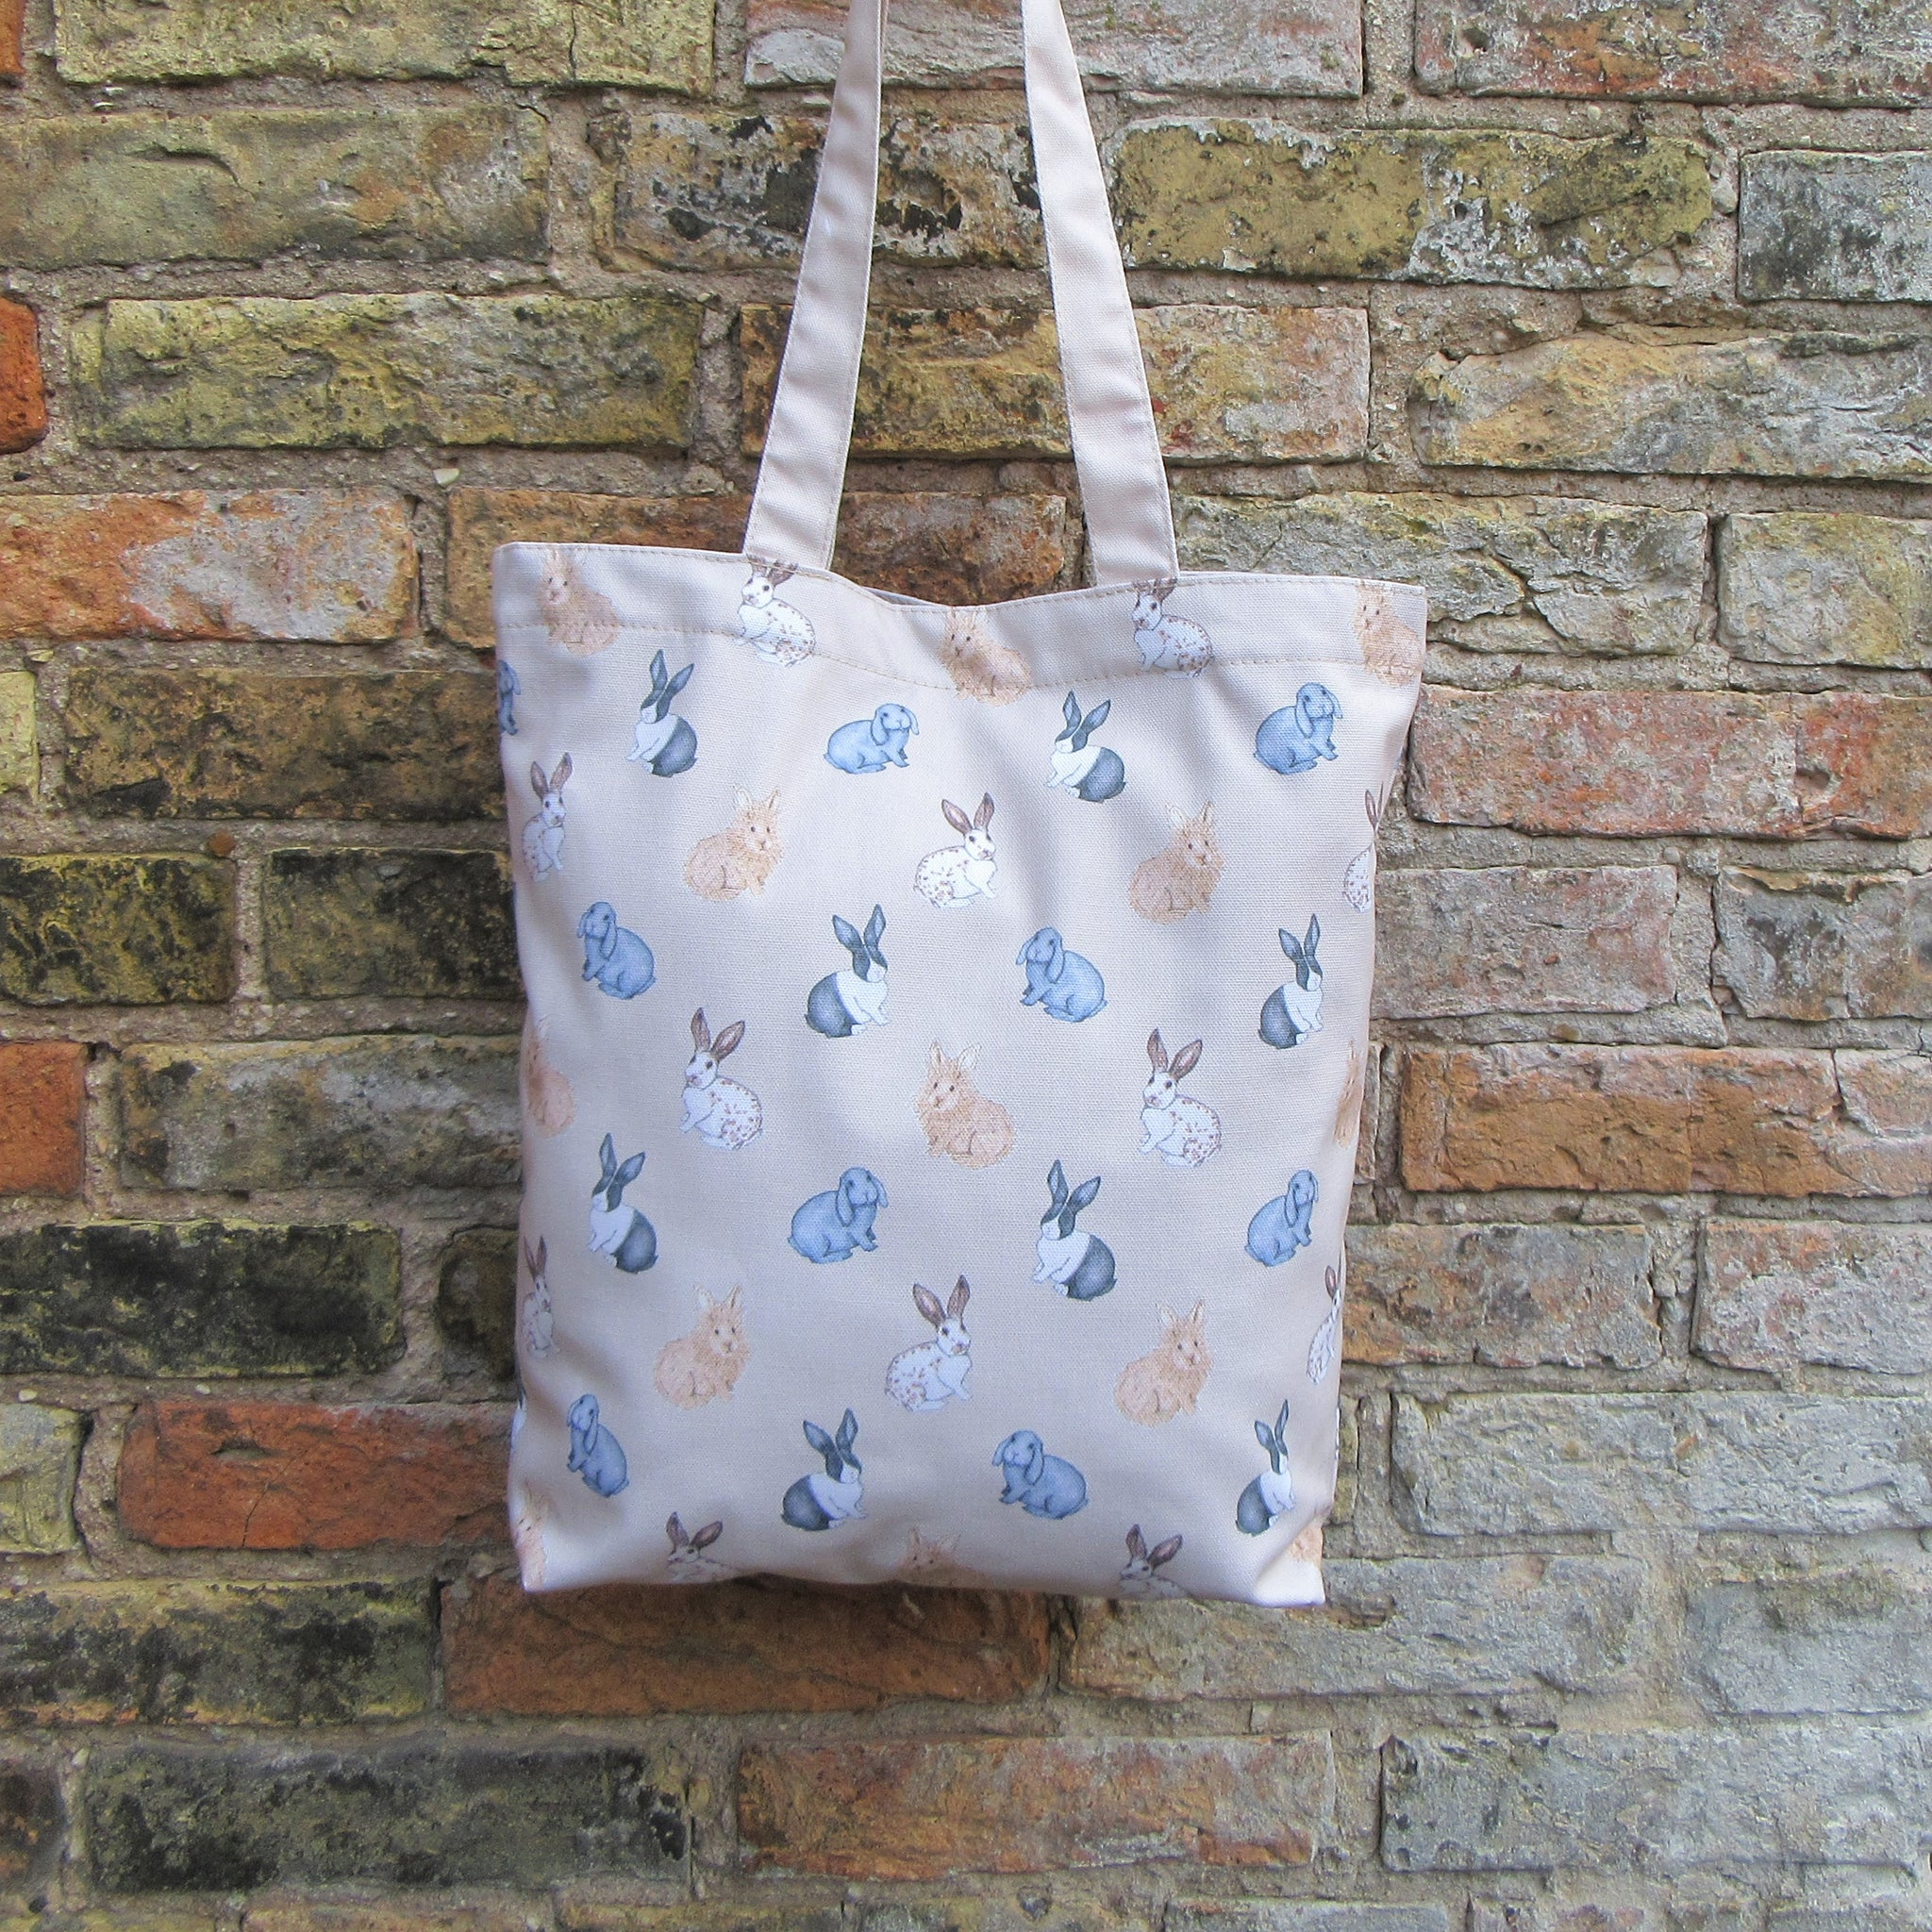 Rabbit Tote Bag - Everything Bunny Rabbit